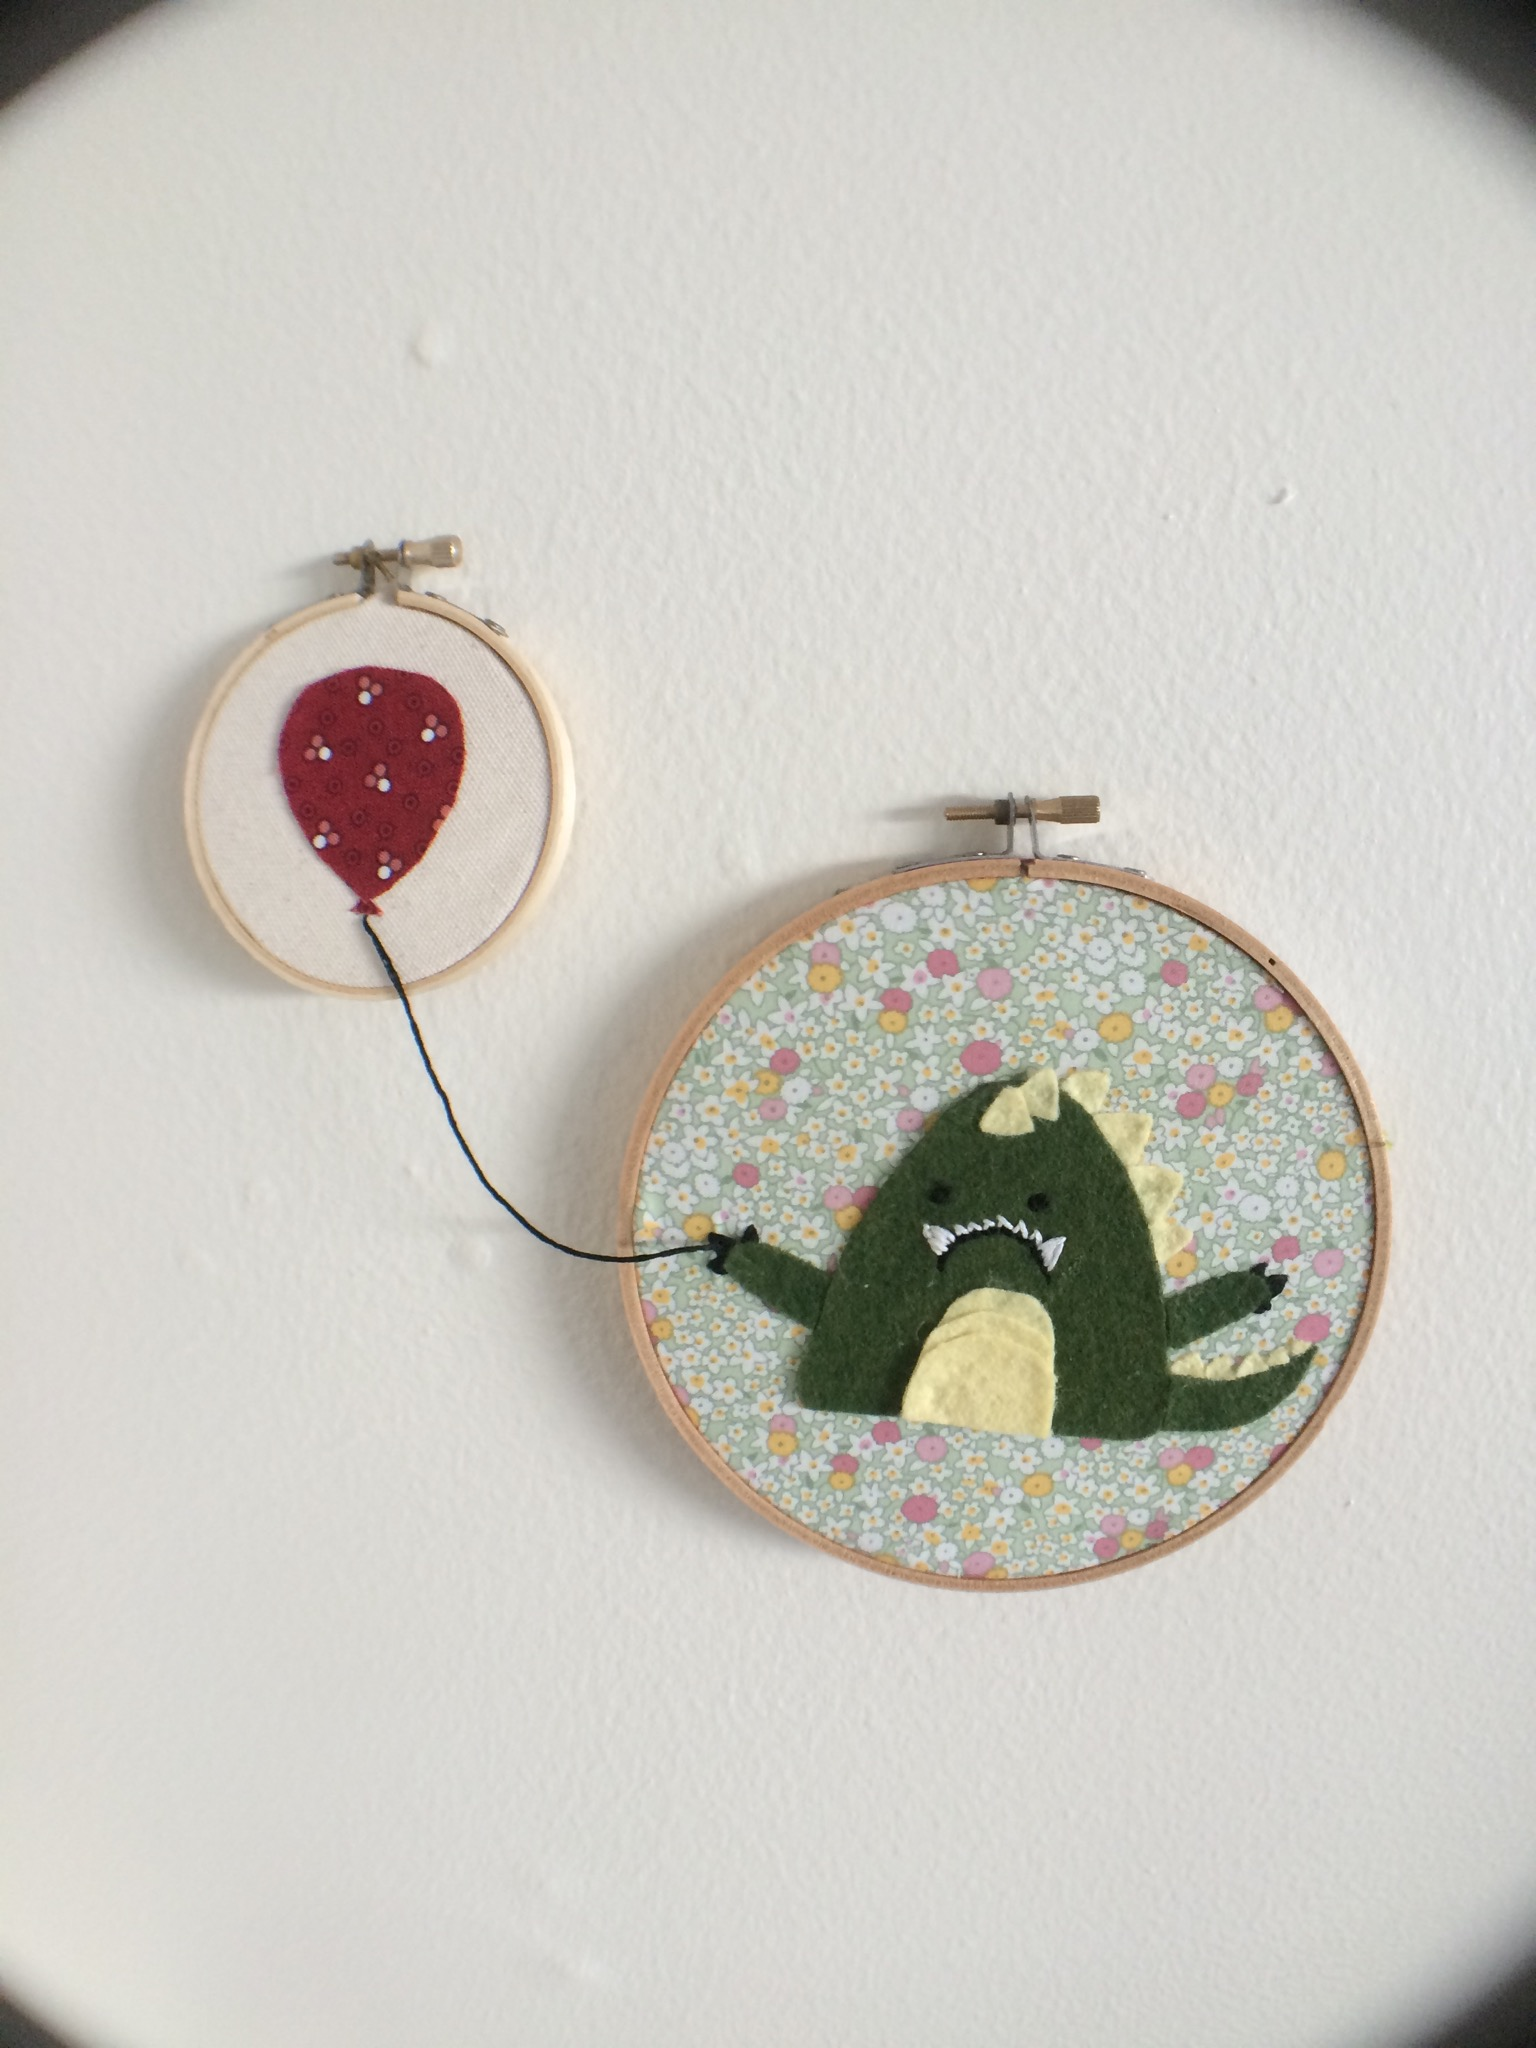 embroidery dino balloon